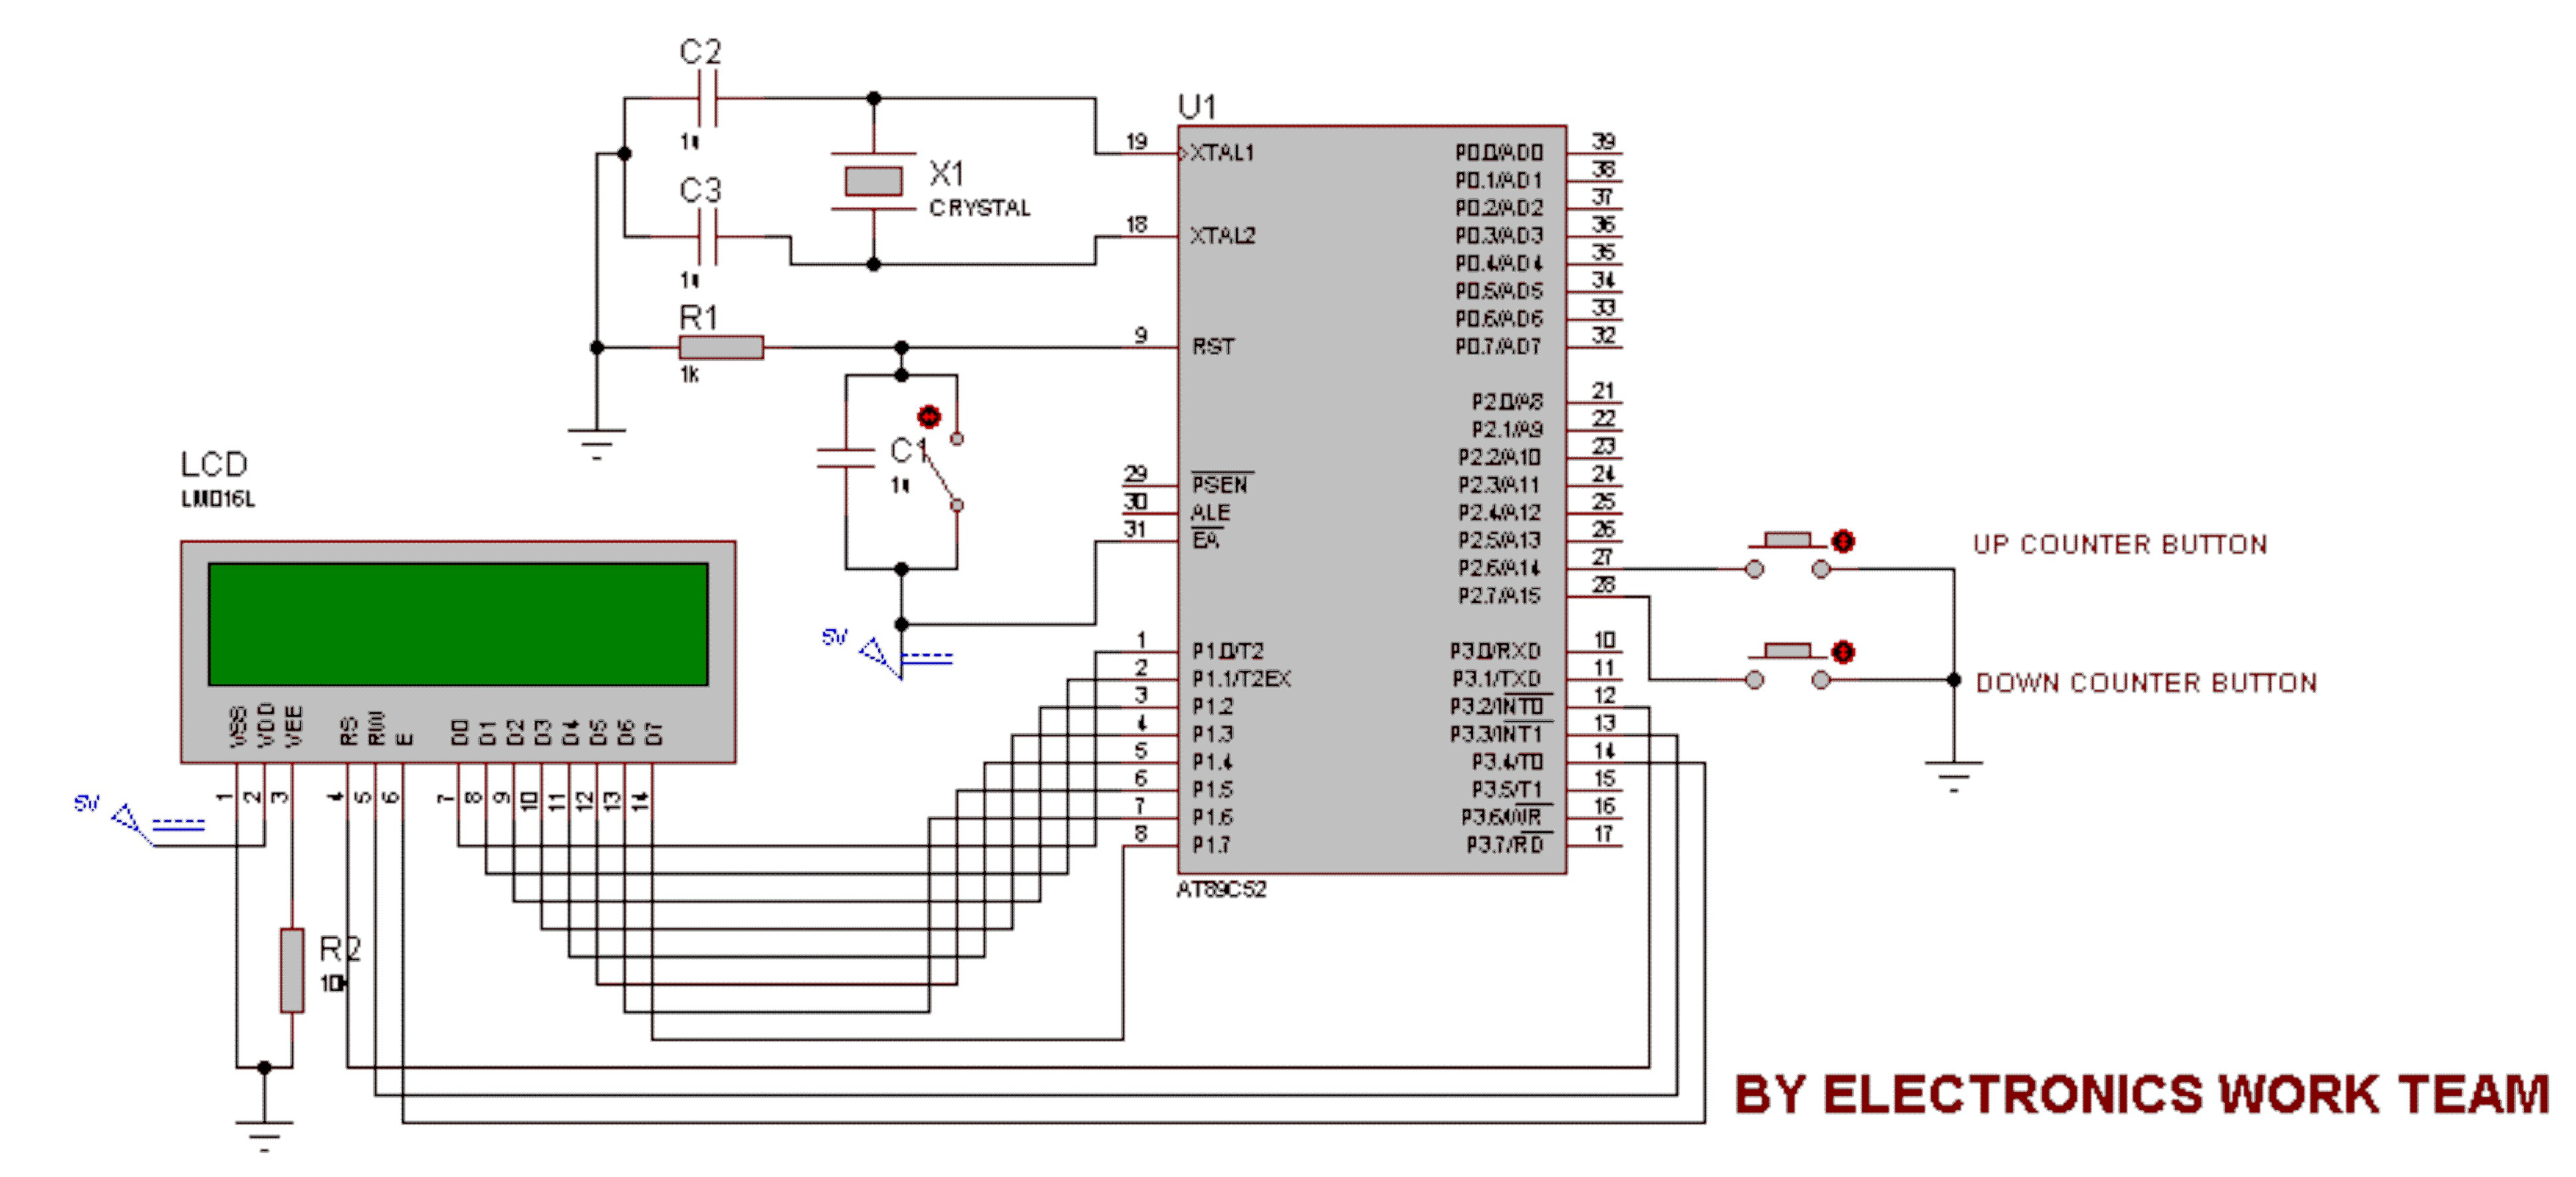 8051 Microcontroller Based Frequency Counter Auto Electrical Color Sensor Circuit1 Circuit With At89s52 Adc0808 Up